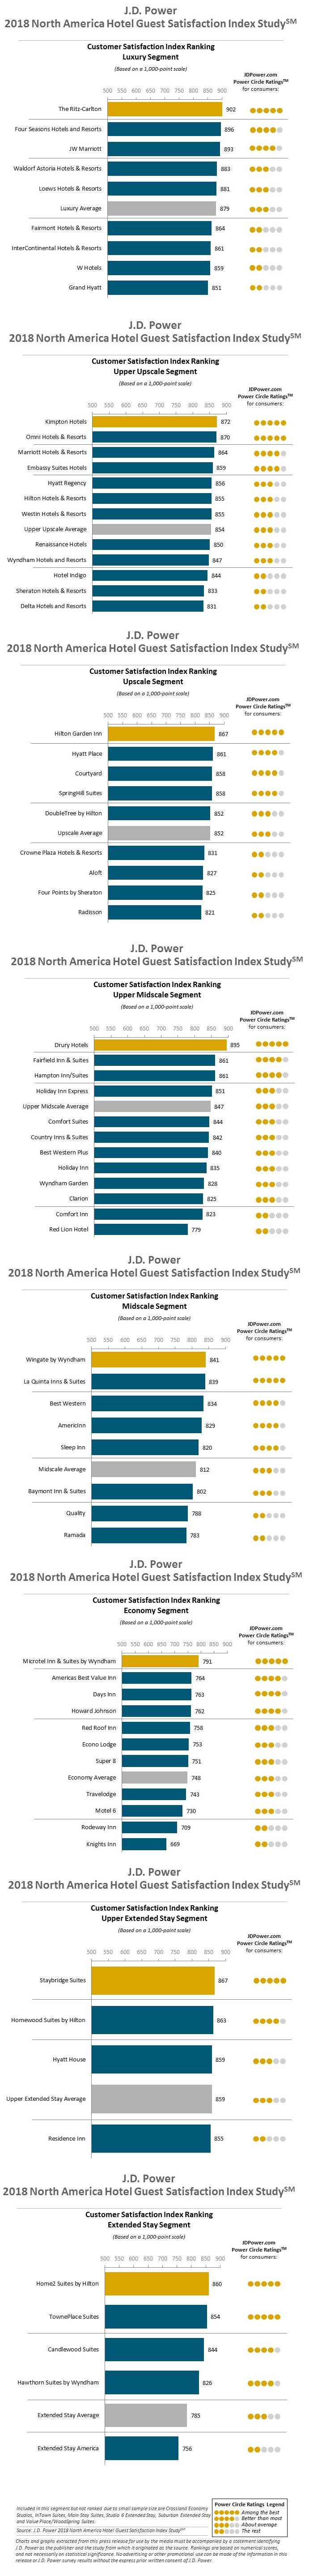 J.D. Power America Hotel Guest Satisfaction Index Study